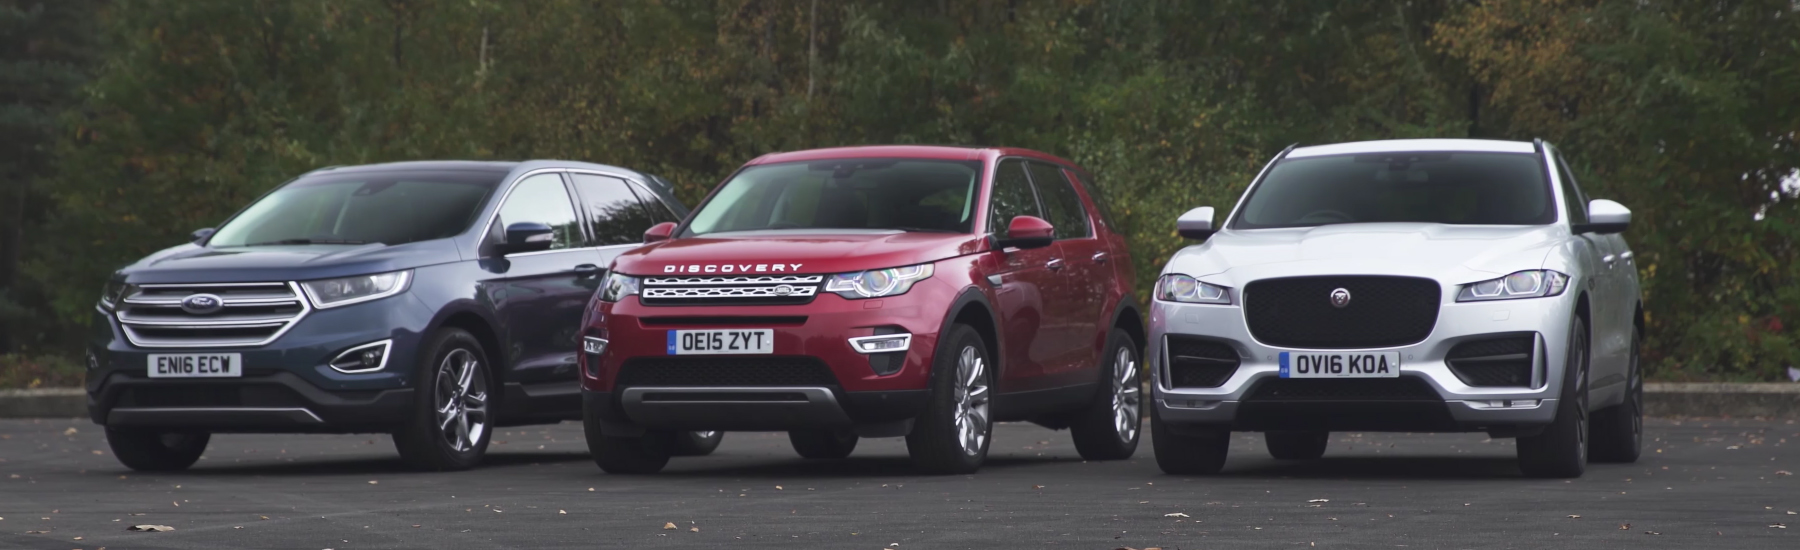 Jaguar F Pace Vs Land Rover Discovery Sport Vs Ford Edge Styling